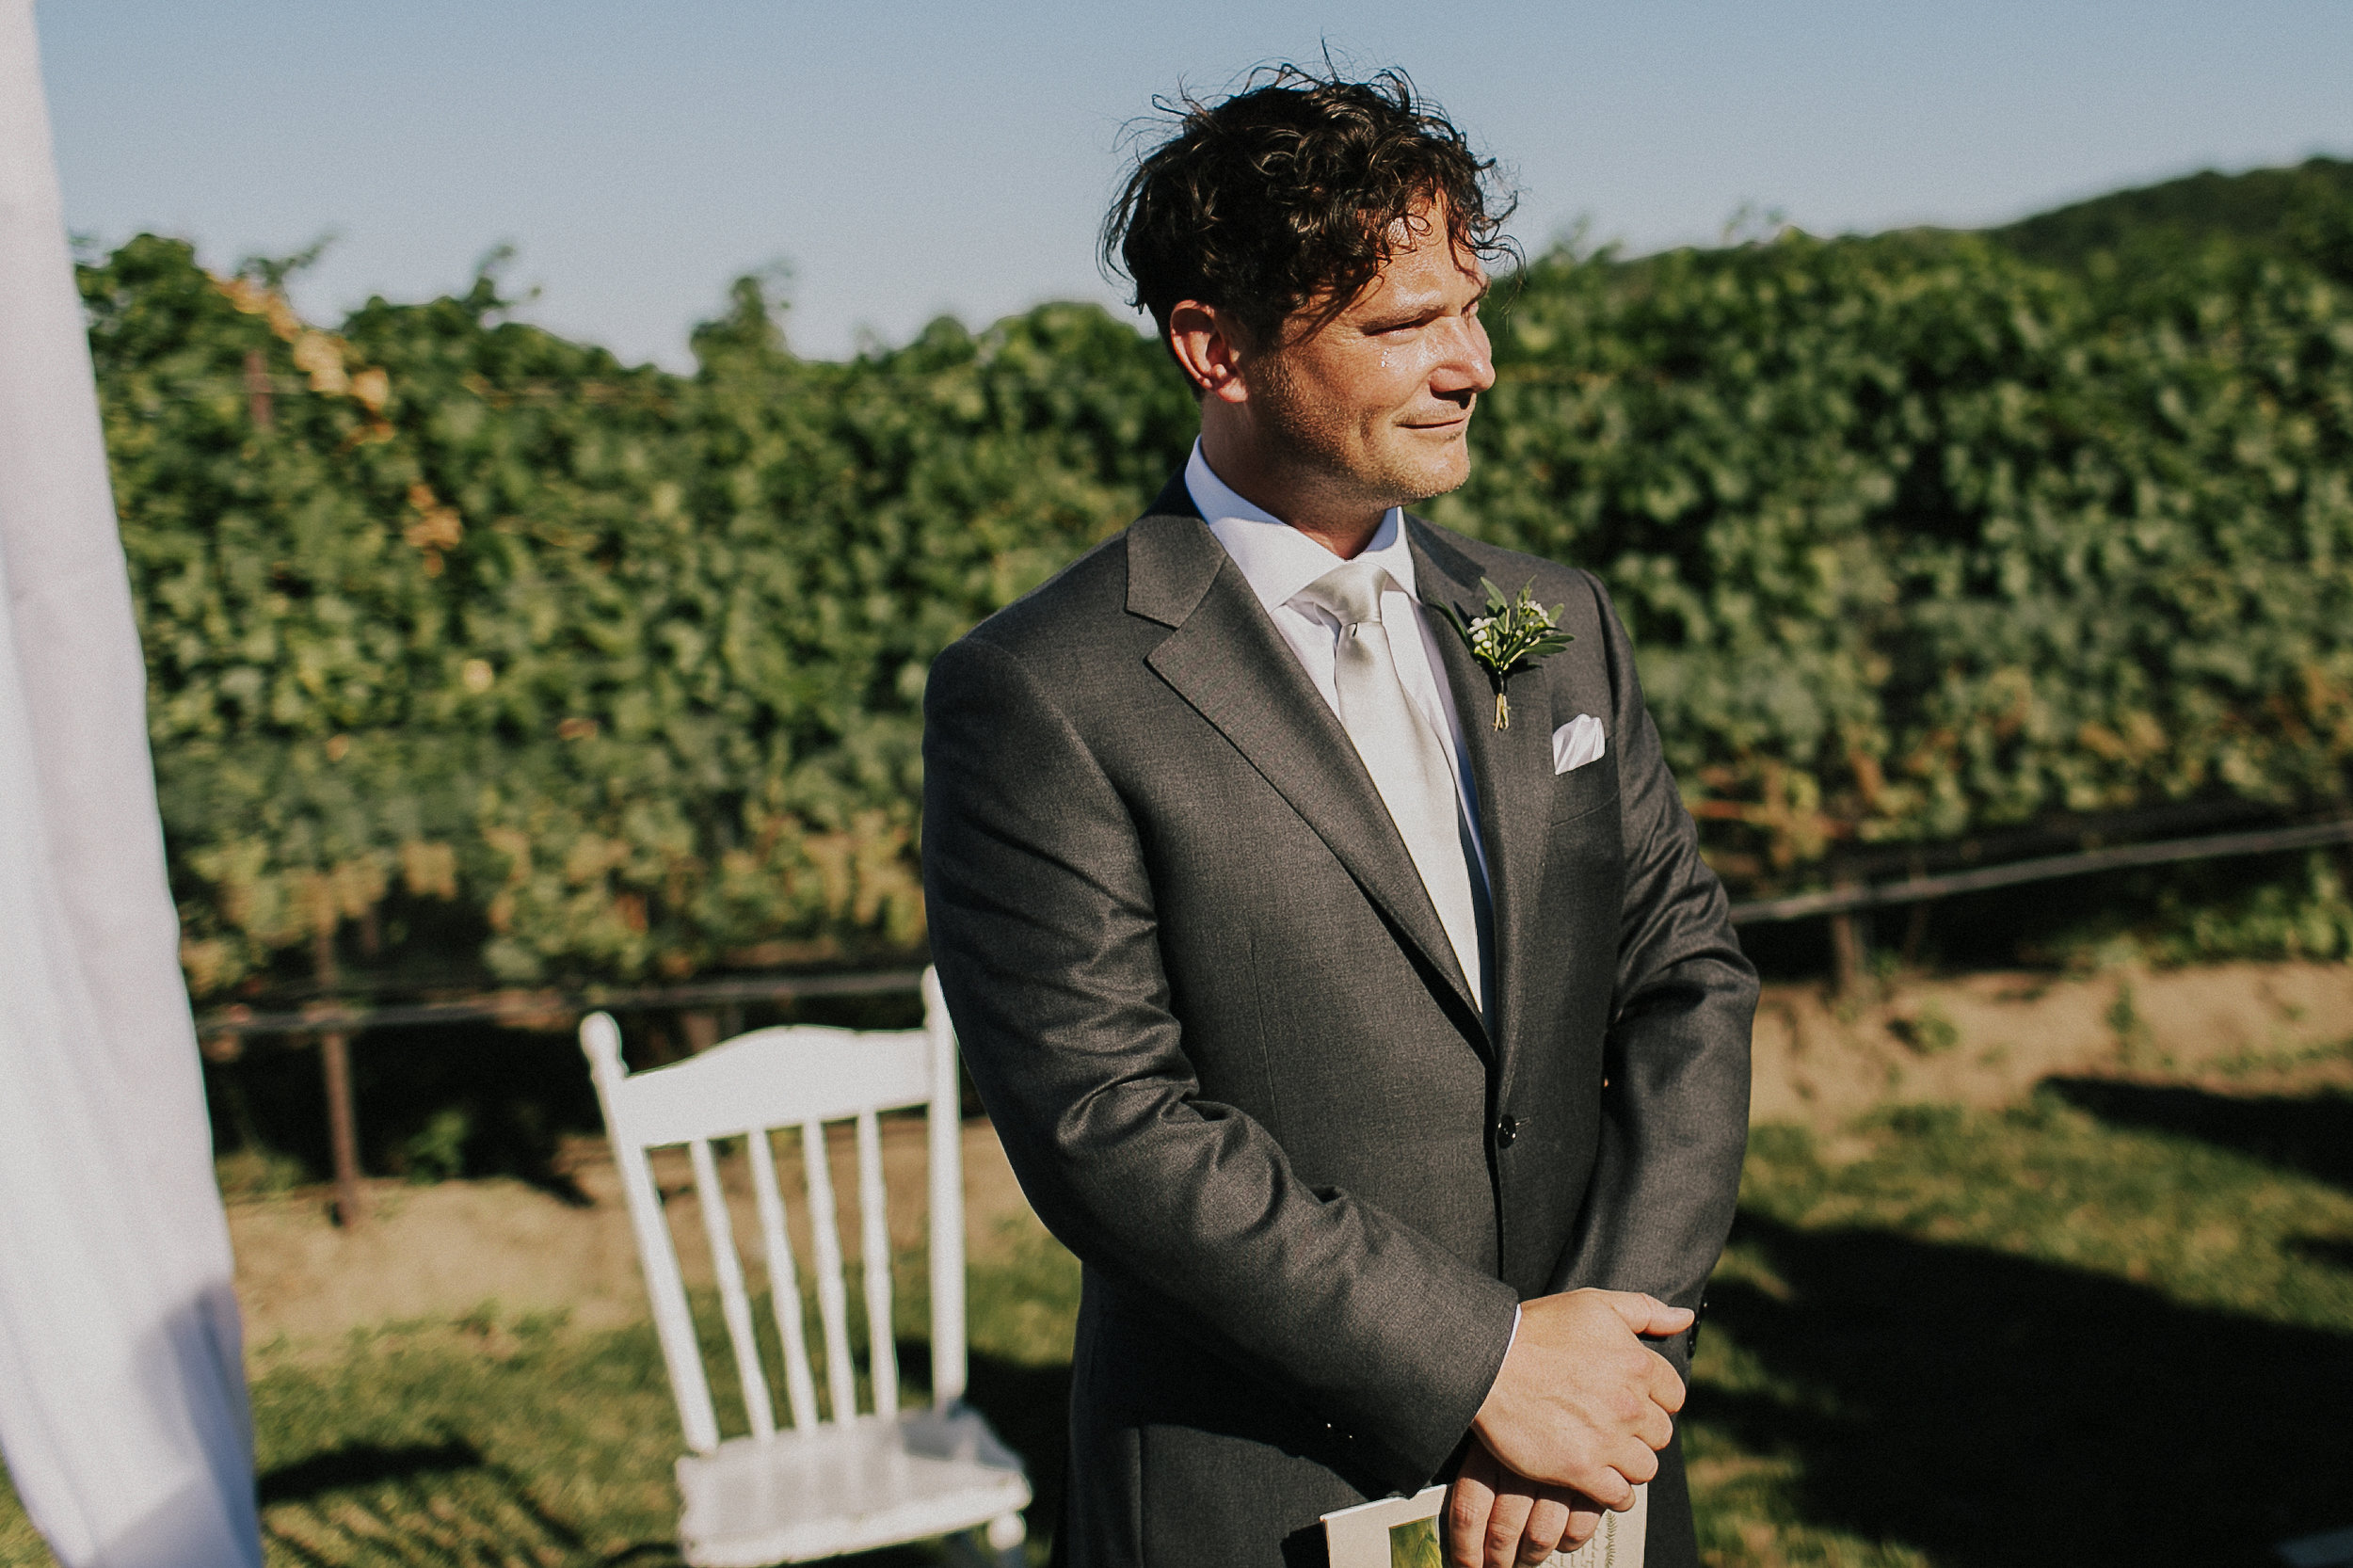 matt-and-erin-vineyard-wedding-112.JPG